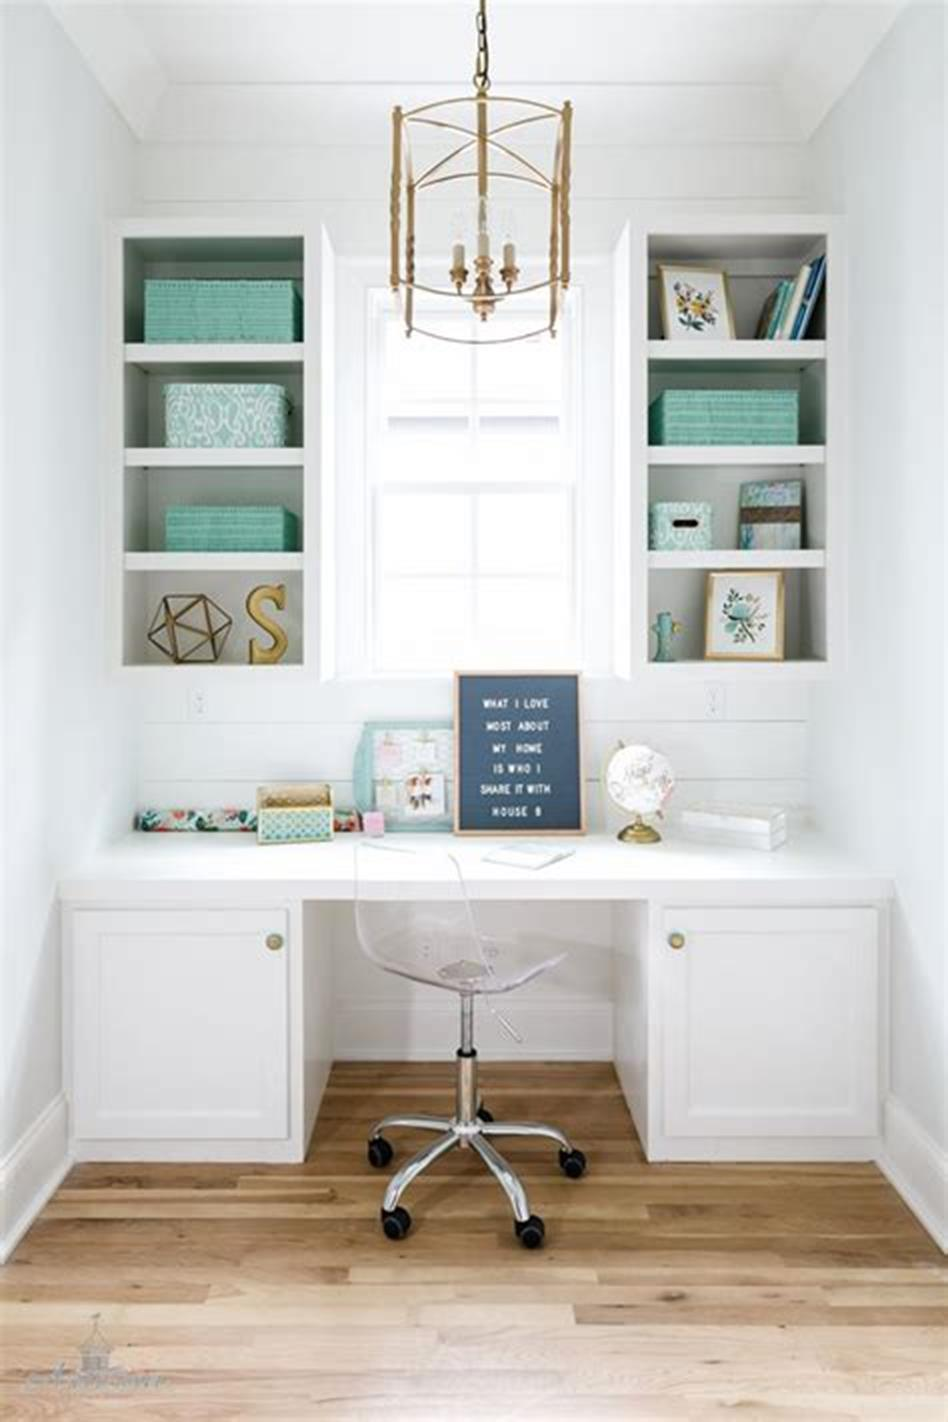 50 Best Small Space Office Decorating Ideas On a Budget 2019 56